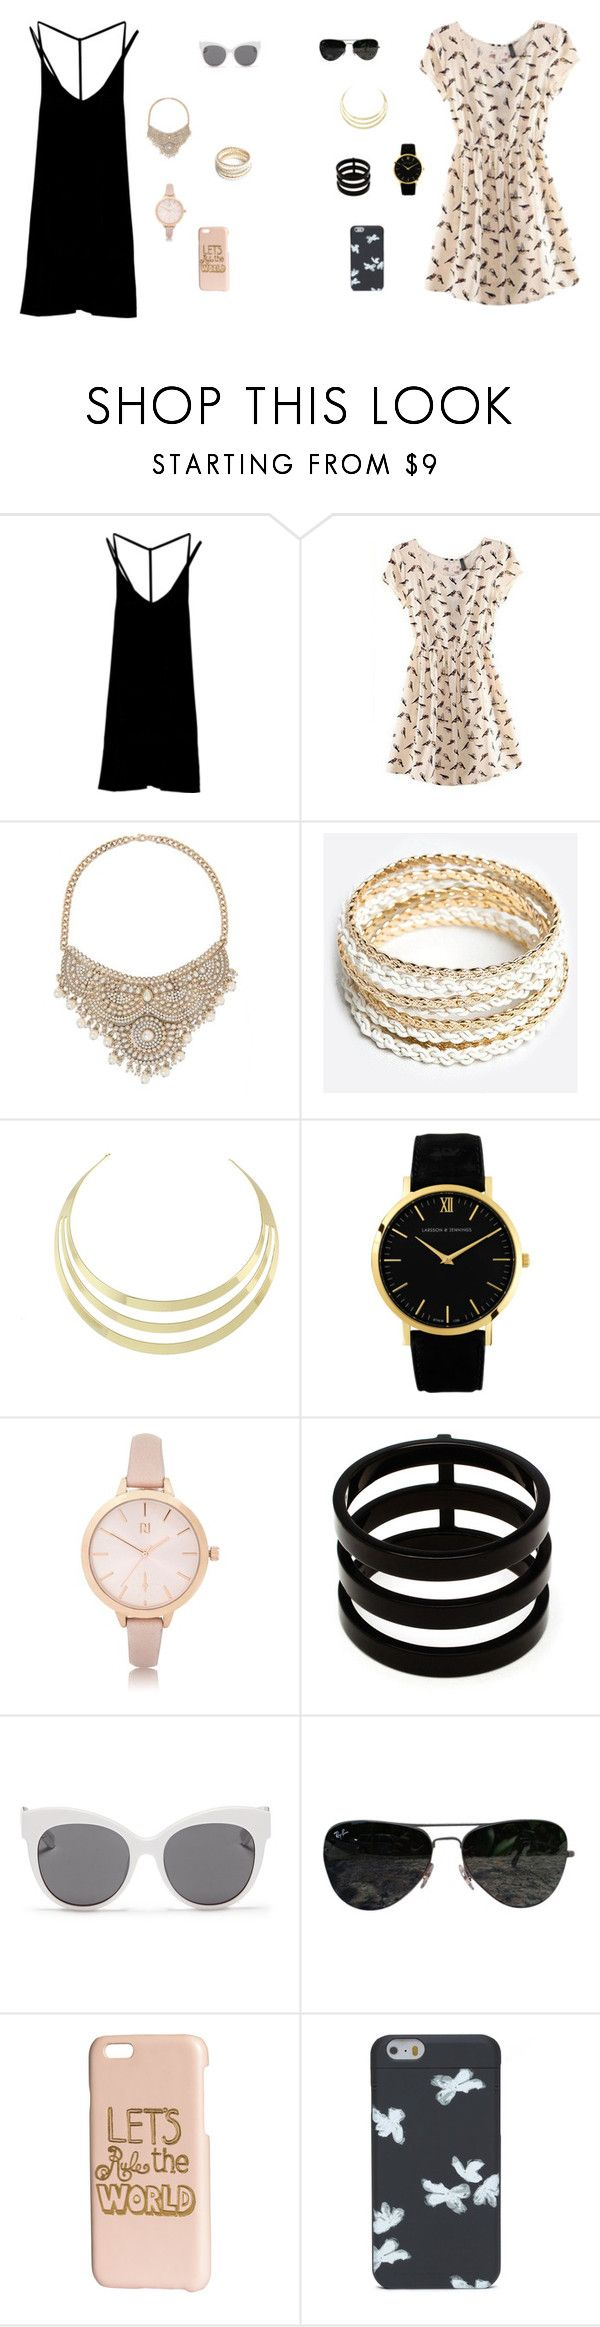 """Beige and black"" by nattavr on Polyvore featuring moda, RVCA, Bebe, ZooShoo, Larsson & Jennings, River Island, Repossi, Blanc & Eclare, Ray-Ban y H&M"